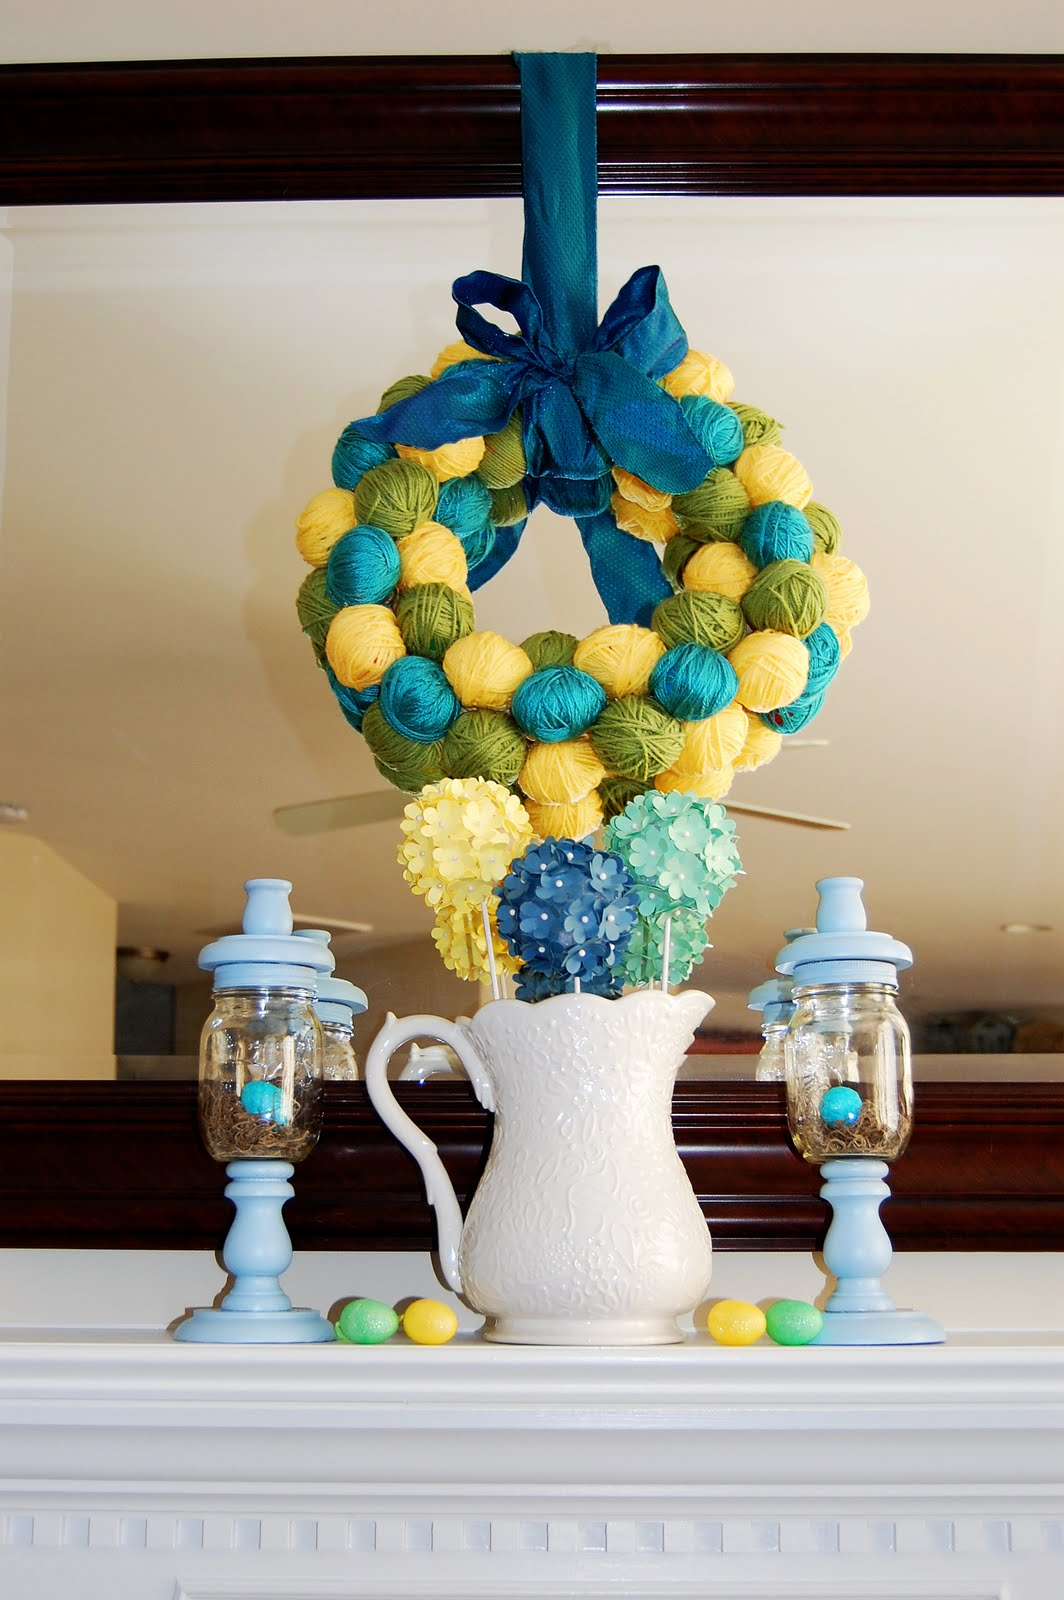 41 FASHIONABLE IDEAS TO DECORATE YOUR HOME FOR EASTER - Fashion